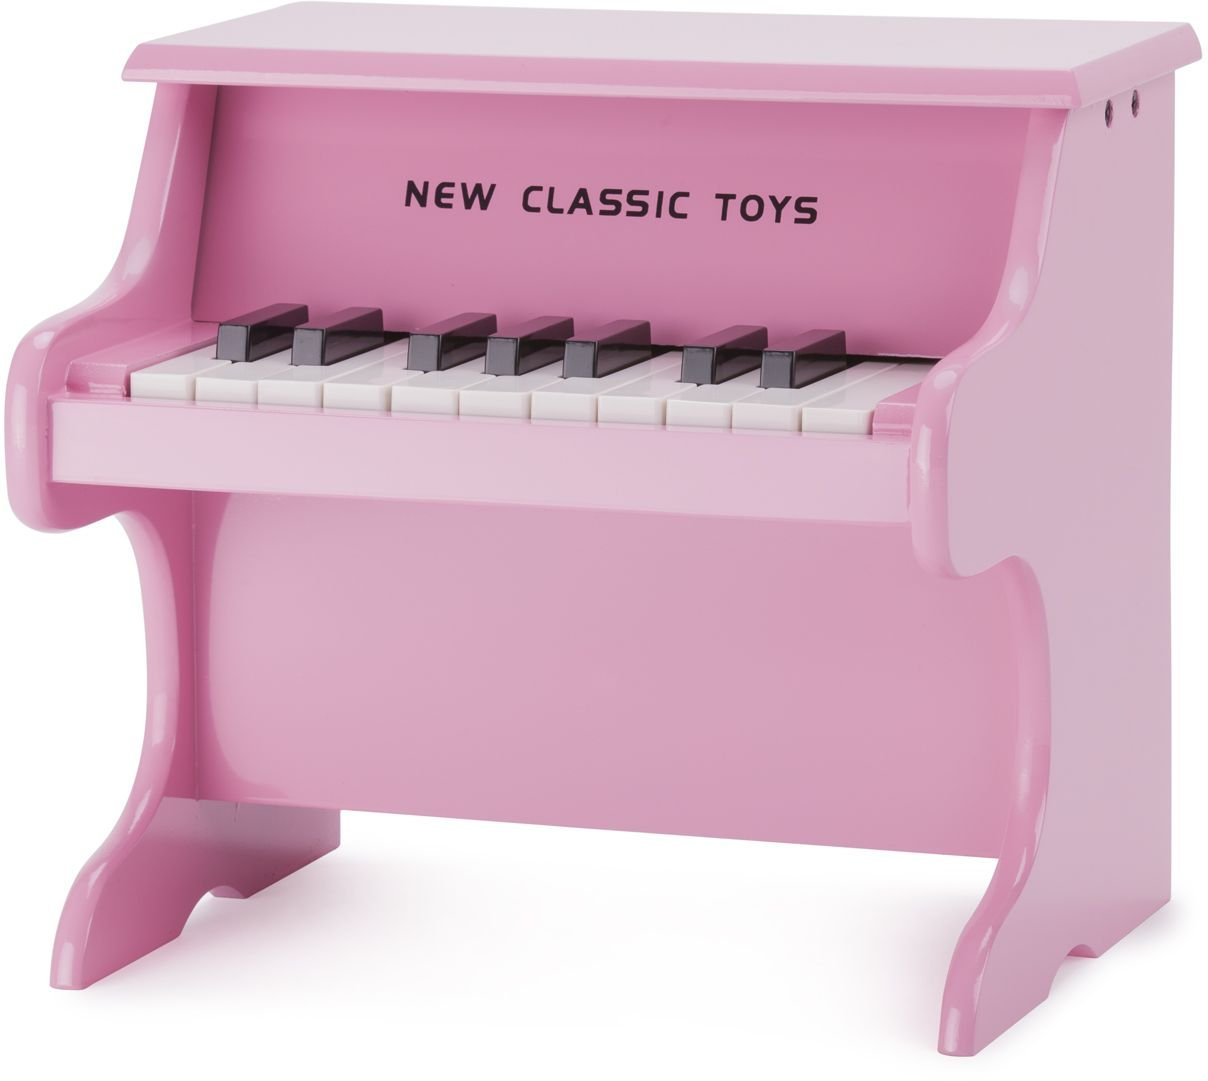 Pink New Classic Toys  10157  Musical Toy Instruments  Toy Piano  Black  18 keys